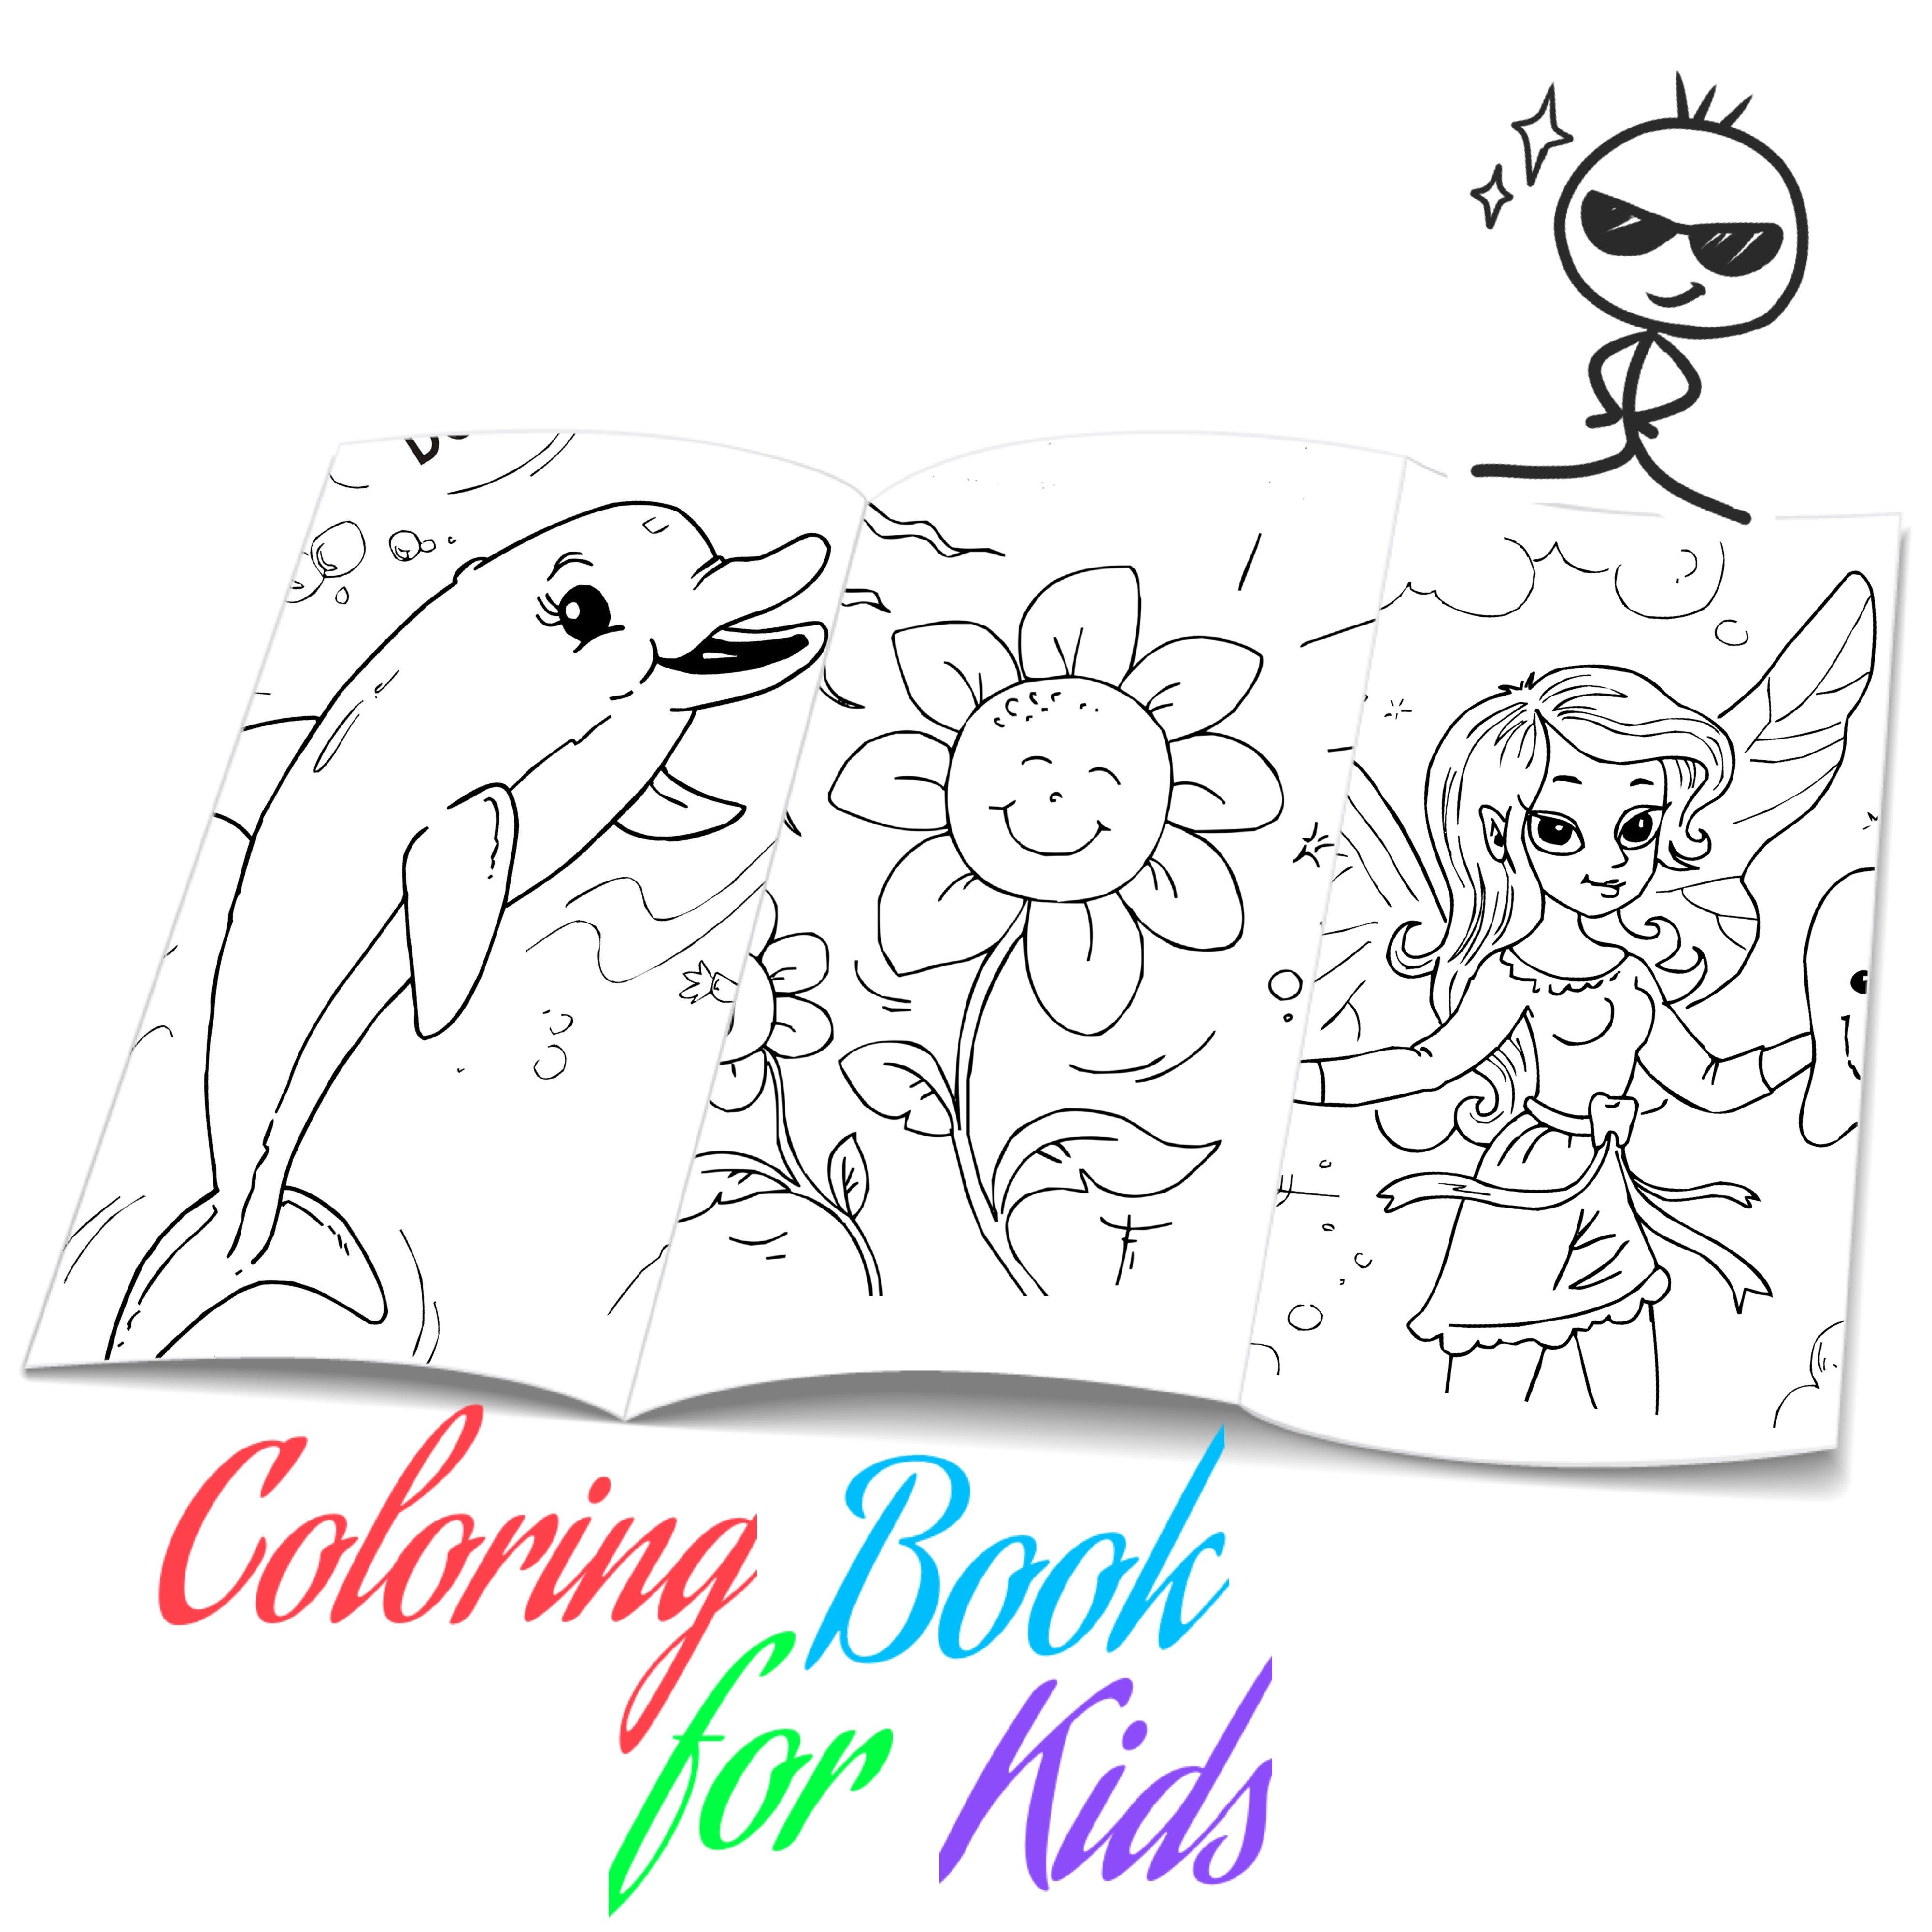 Coloring Book For Kids Coloring Pages Printable Coloring Sheets In 2020 Coloring Books Coloring Pages For Kids Printable Coloring Book